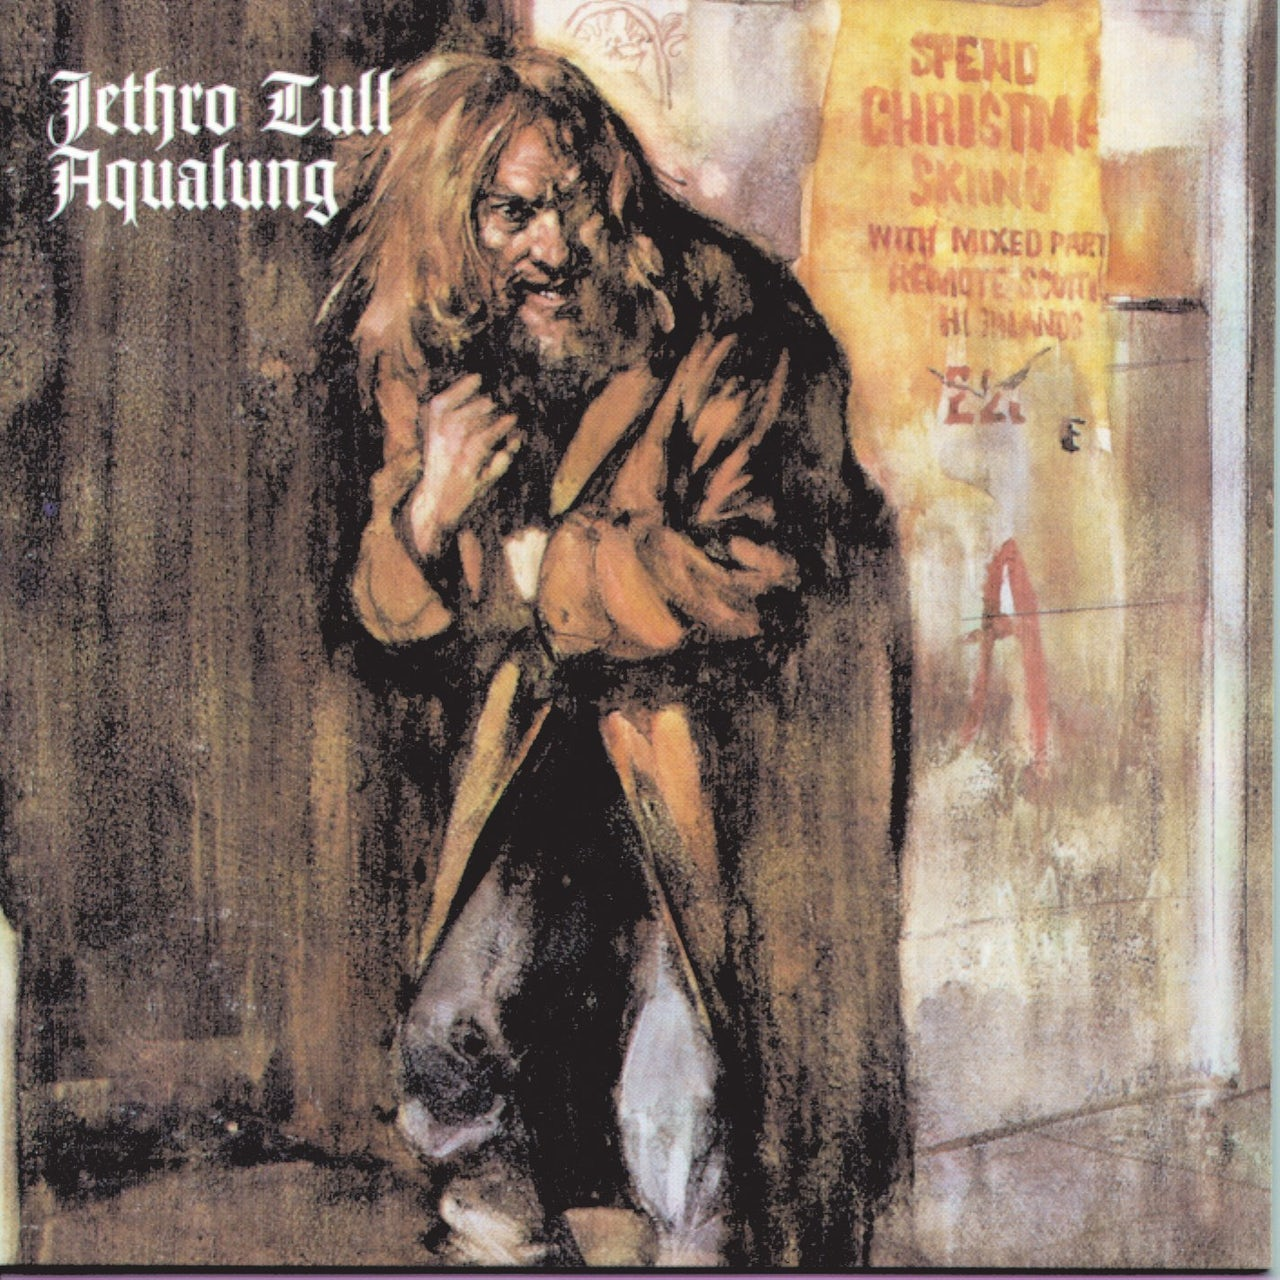 The cover of Jethro Tull's Aqualung.